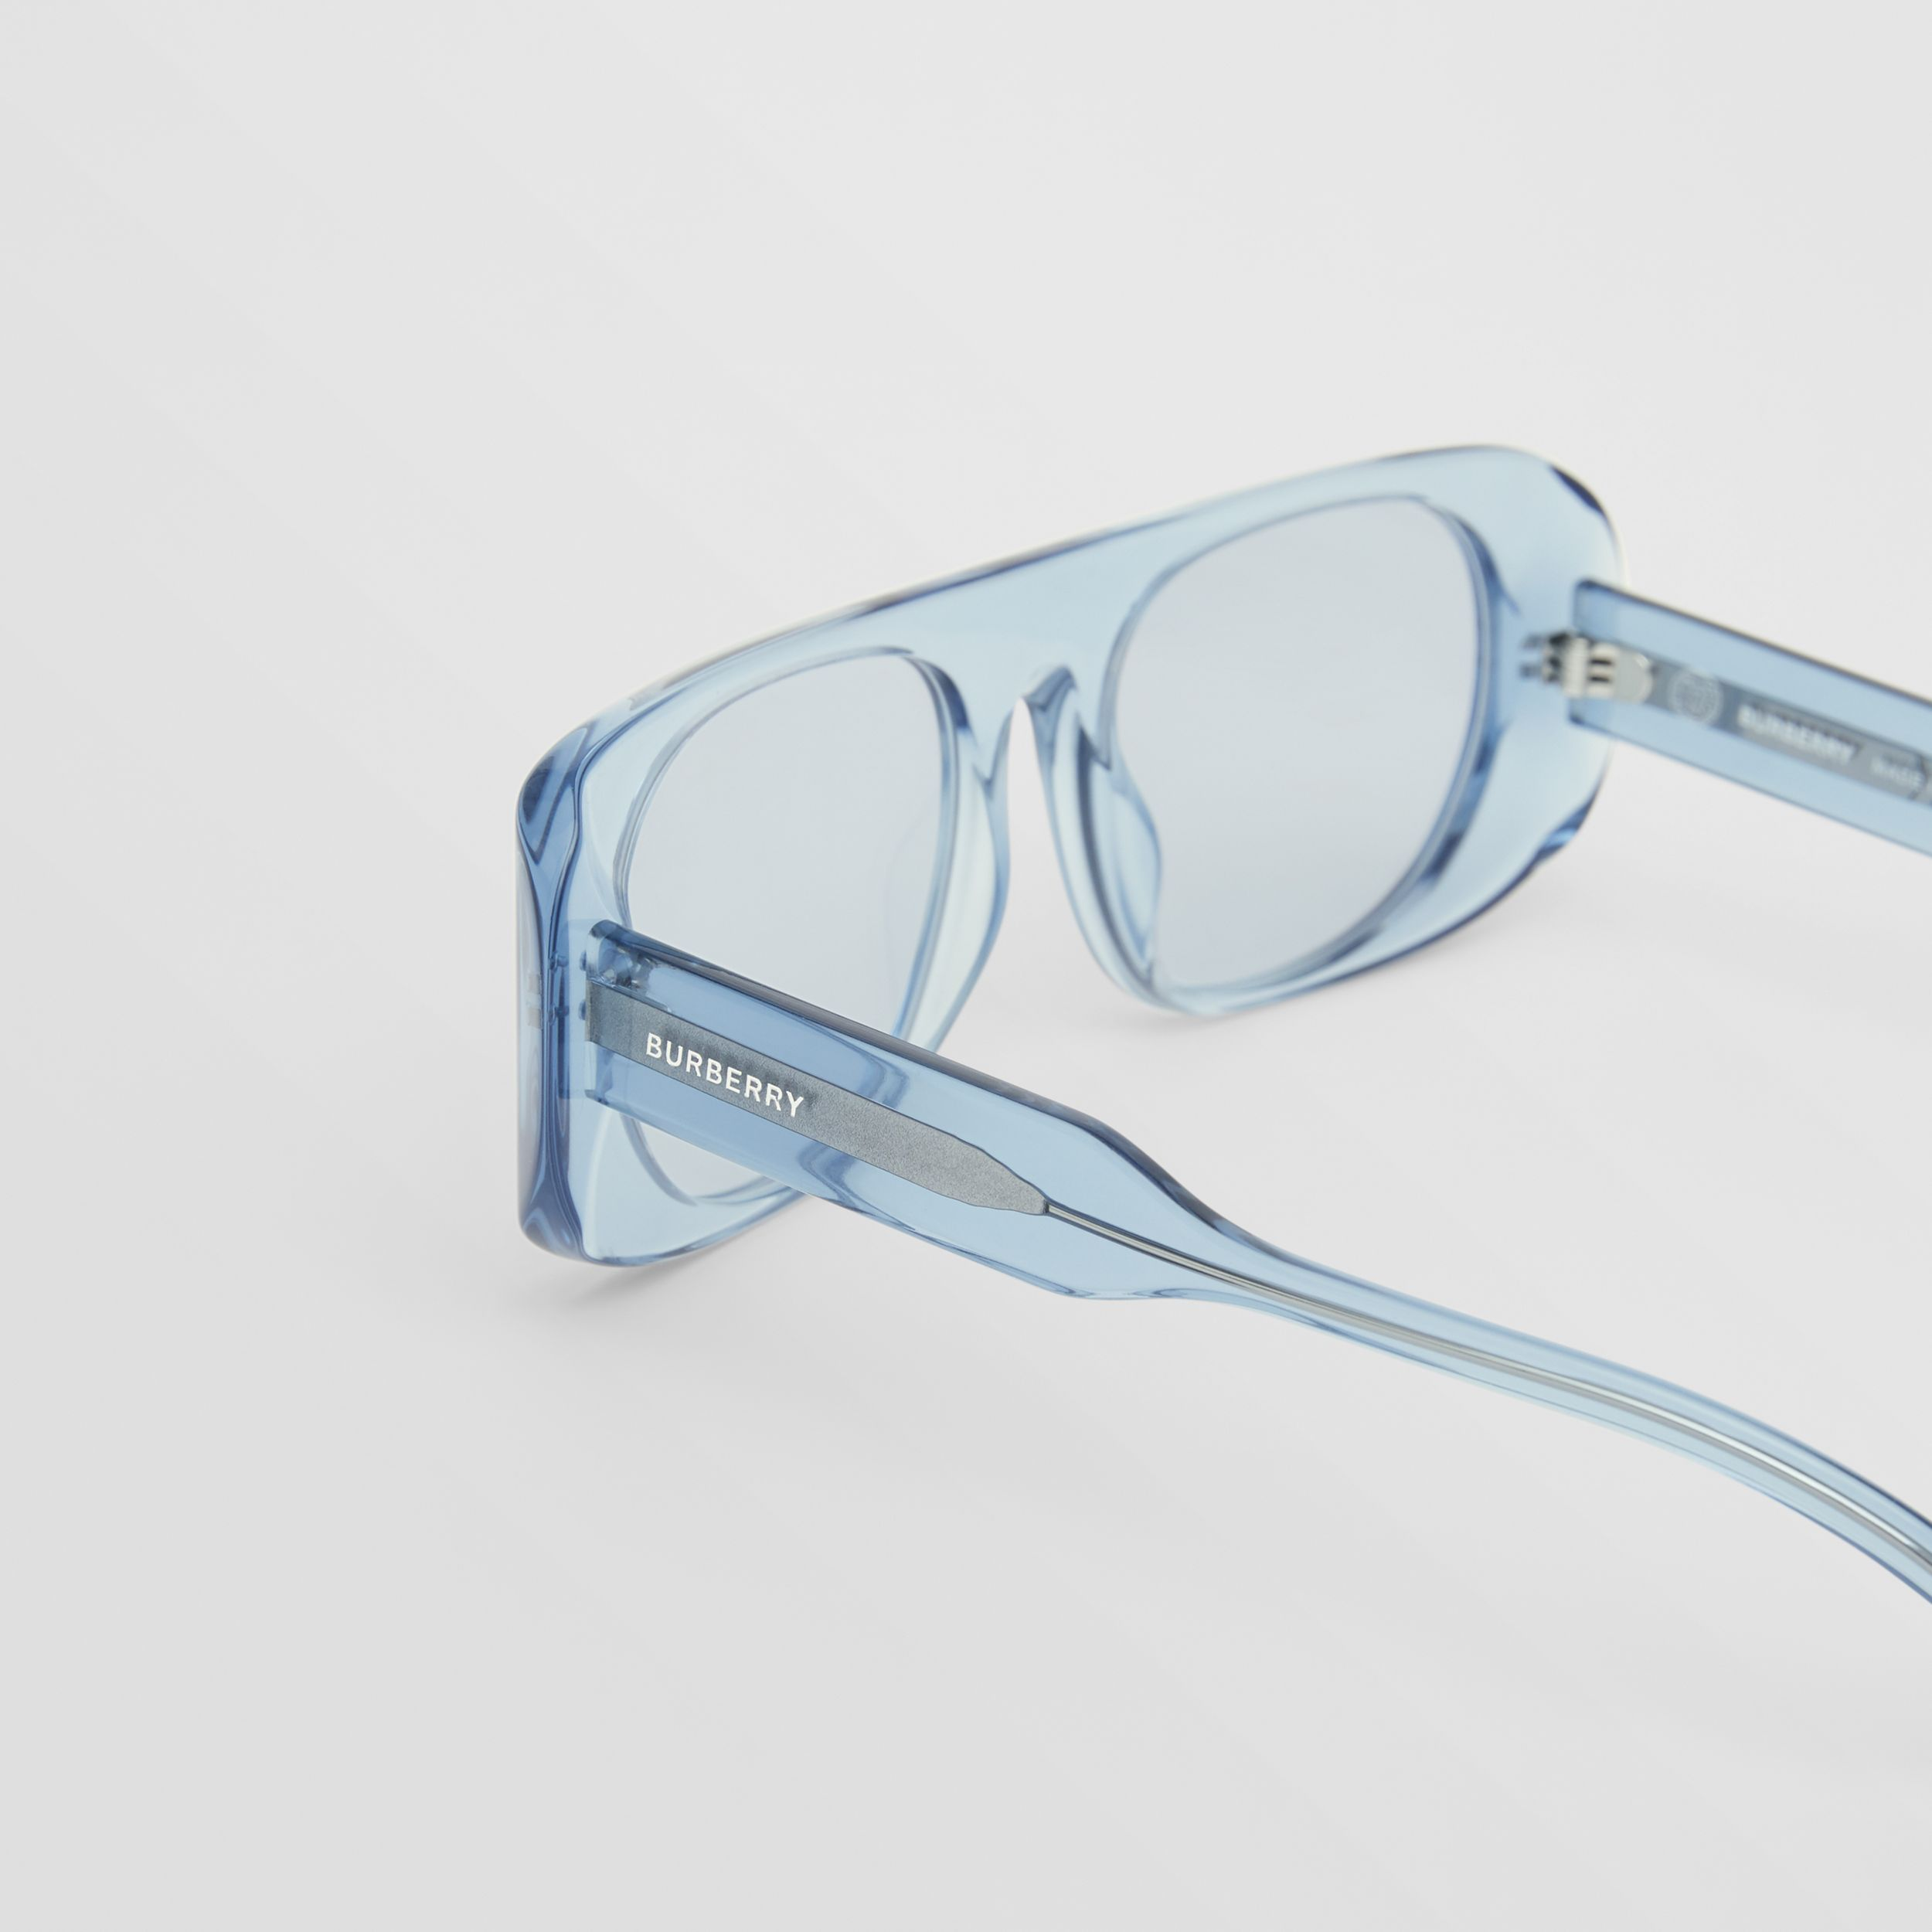 Blake Sunglasses in Transparent Blue | Burberry Australia - 2